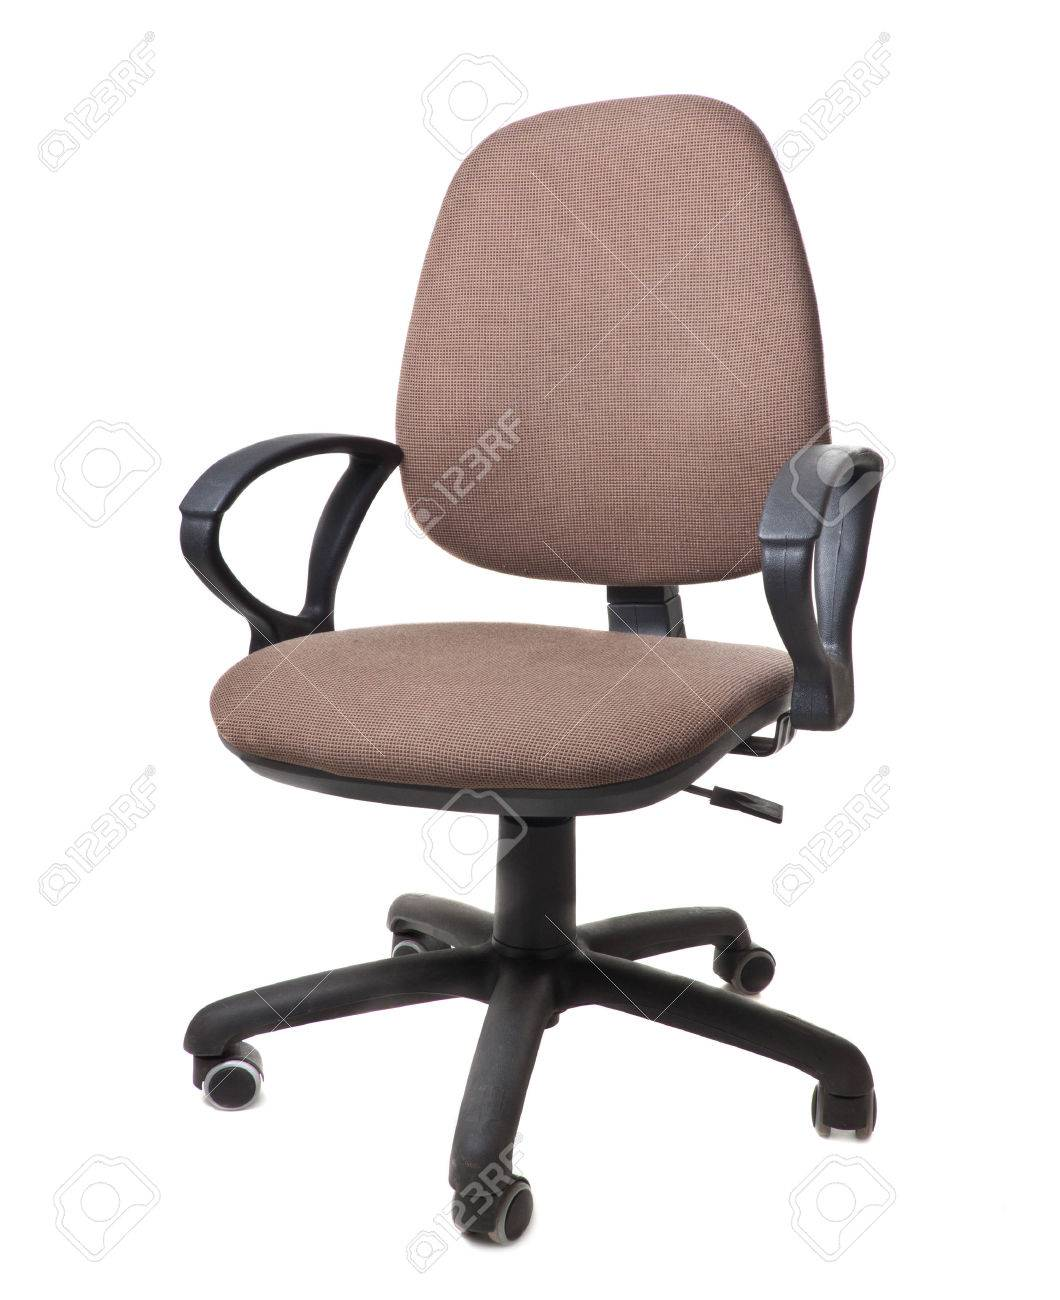 chair on wheels slipcovers for barrel chairs office stock photo picture and royalty free image 60528650